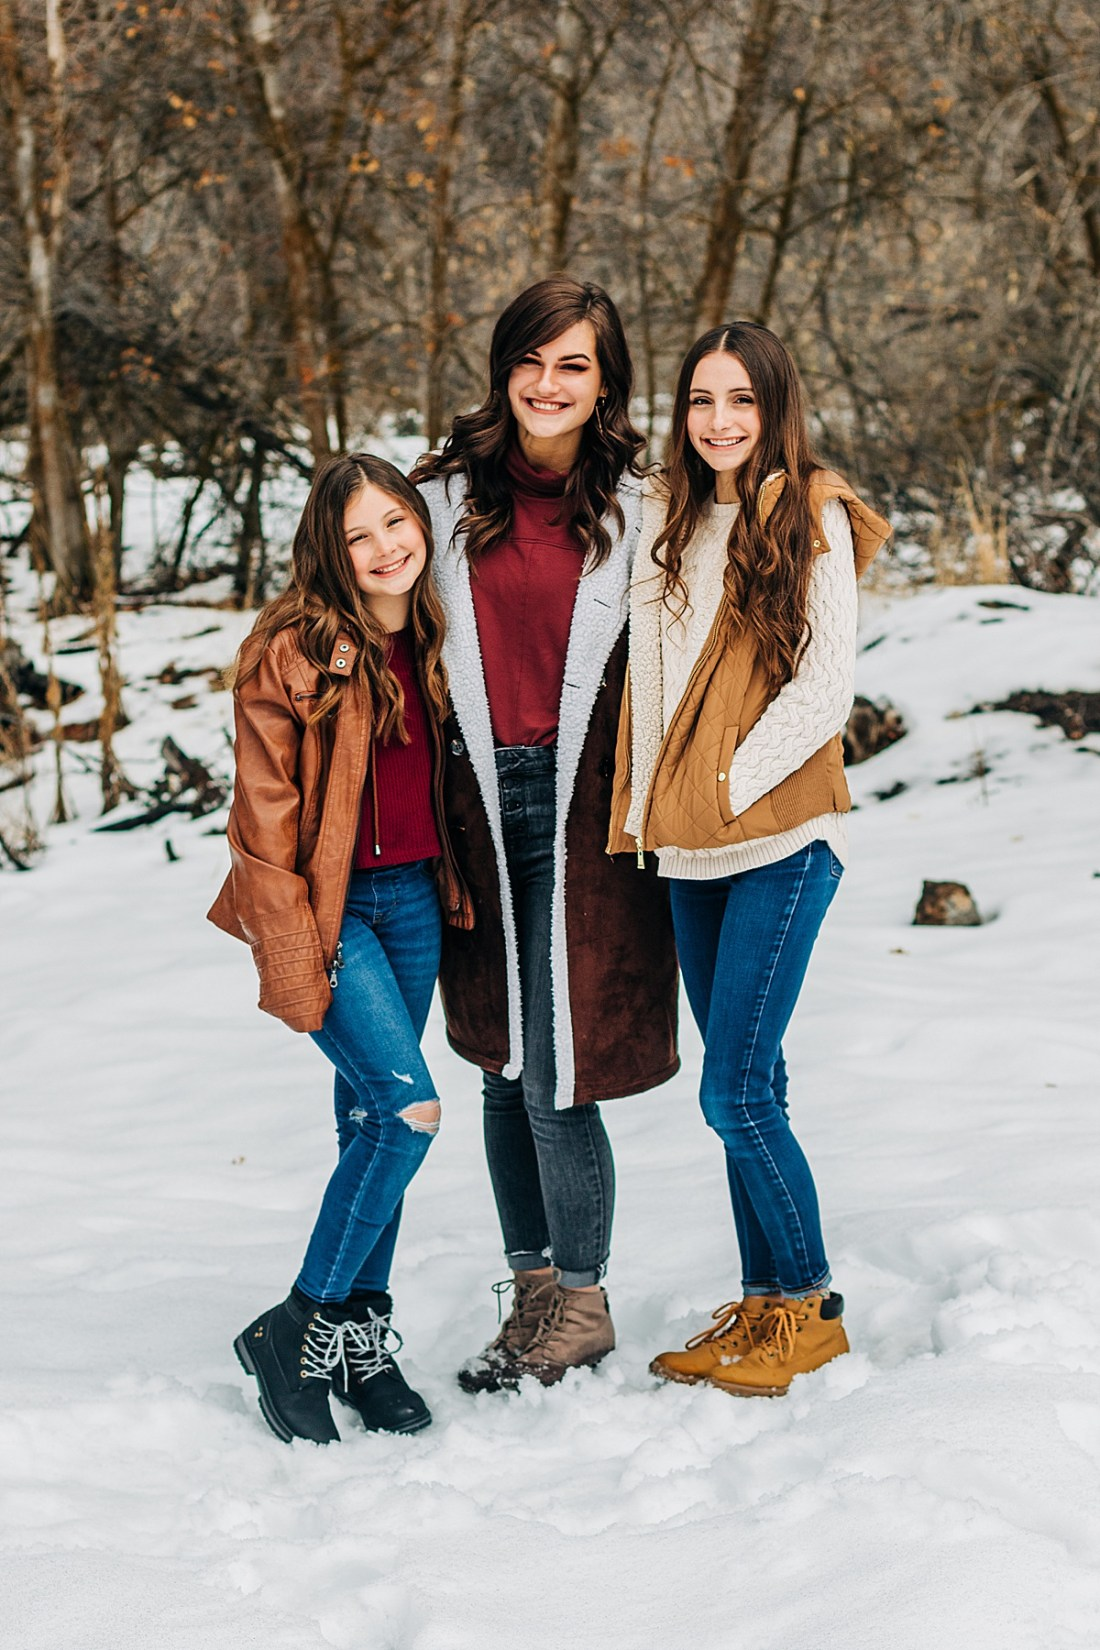 Dalton   Family Pictures in the Snow